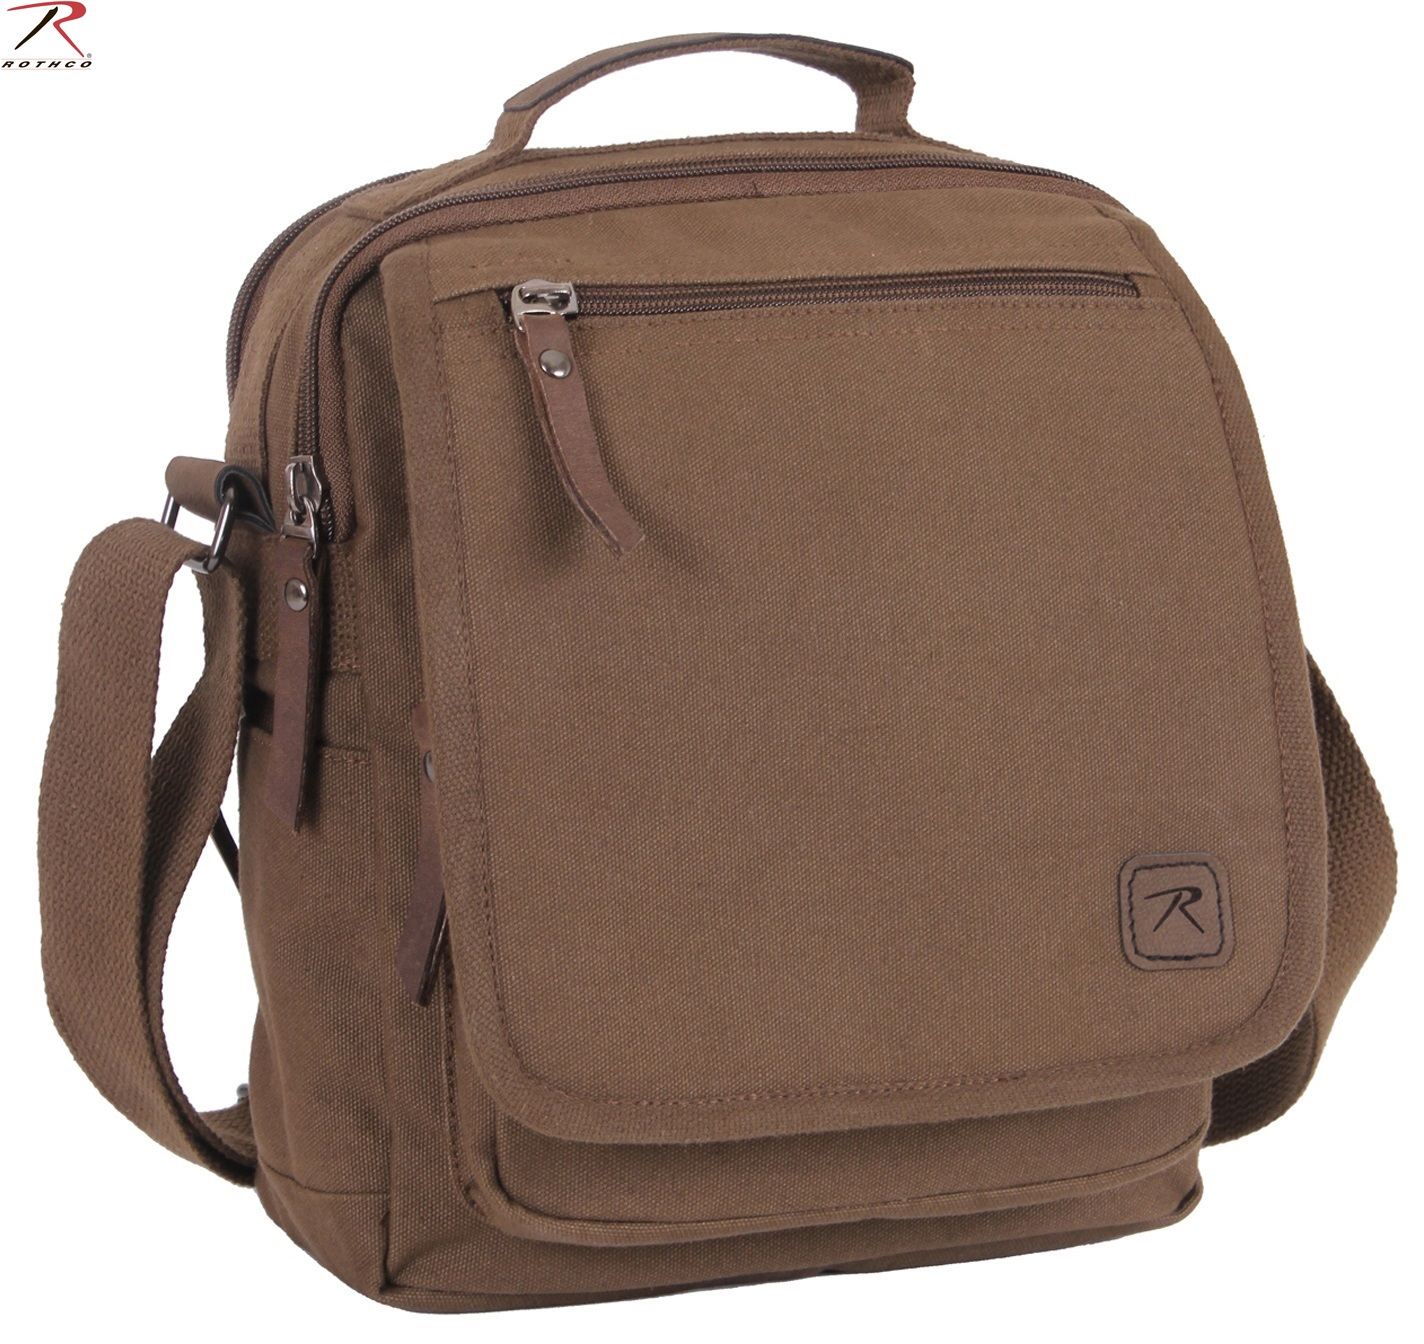 Canvas Messenger Bag Every Day Carry Brown